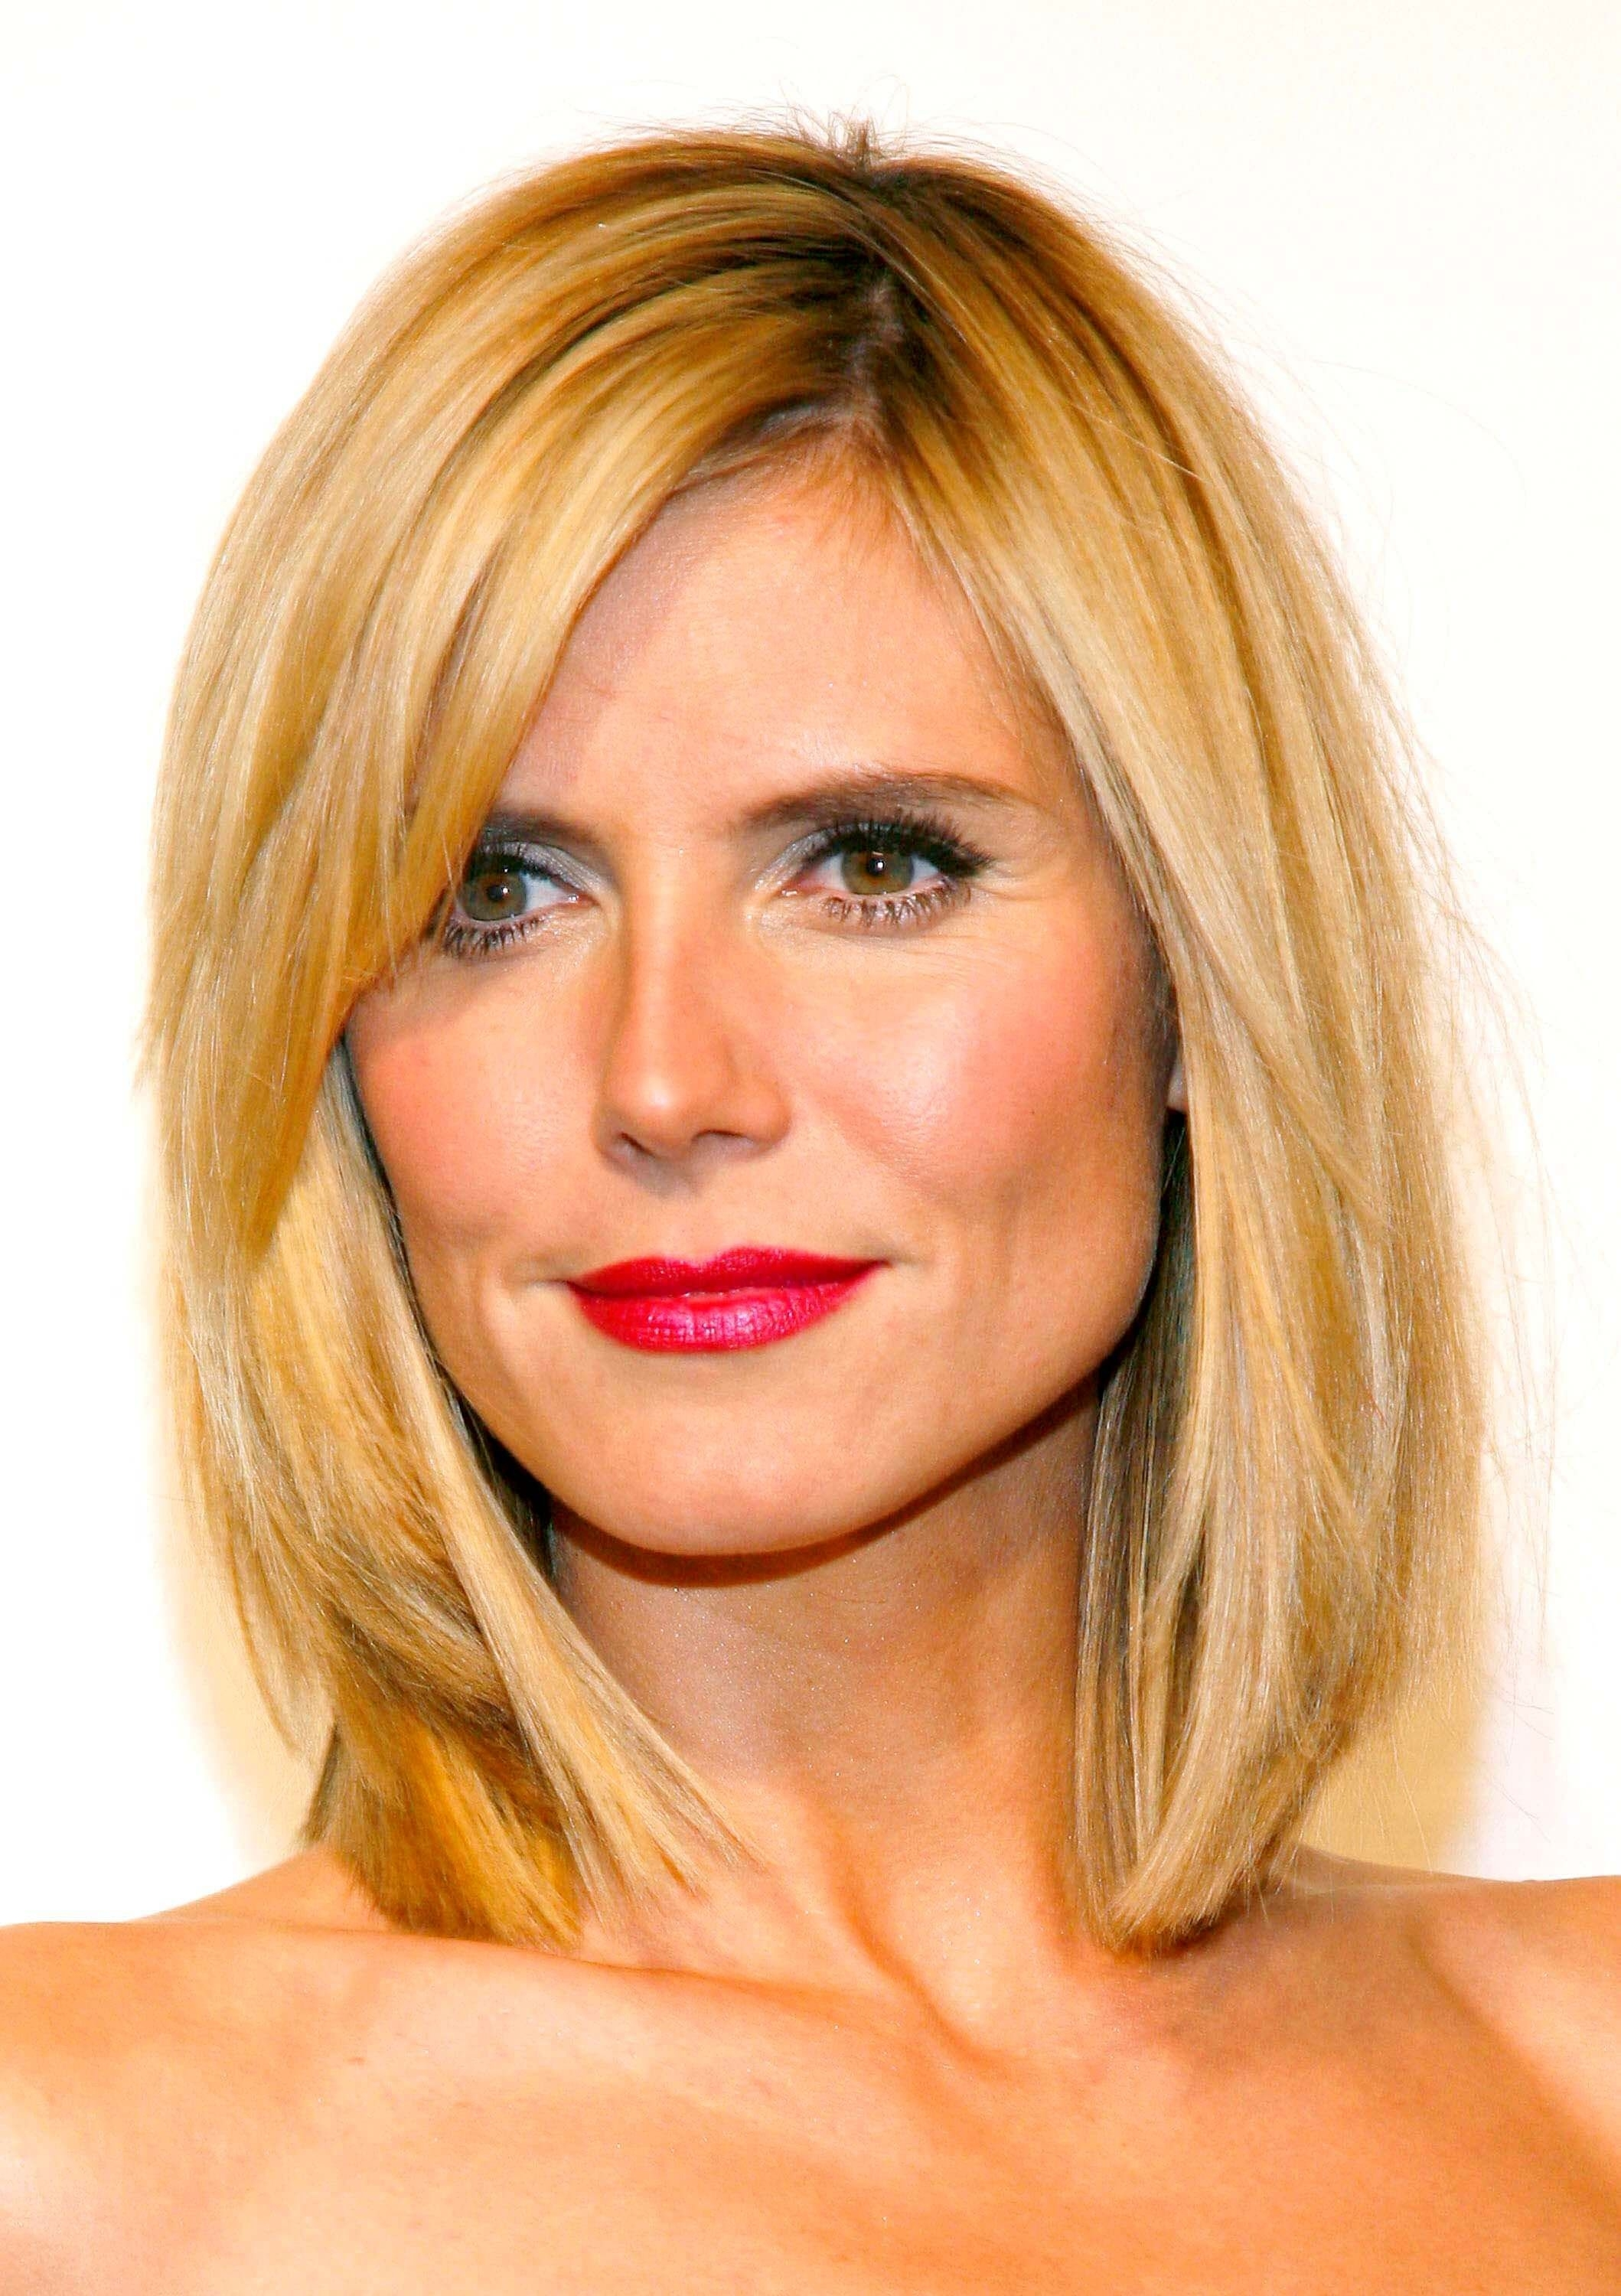 Best Hairstyle For Square Face Thin Hair - Wavy Haircut